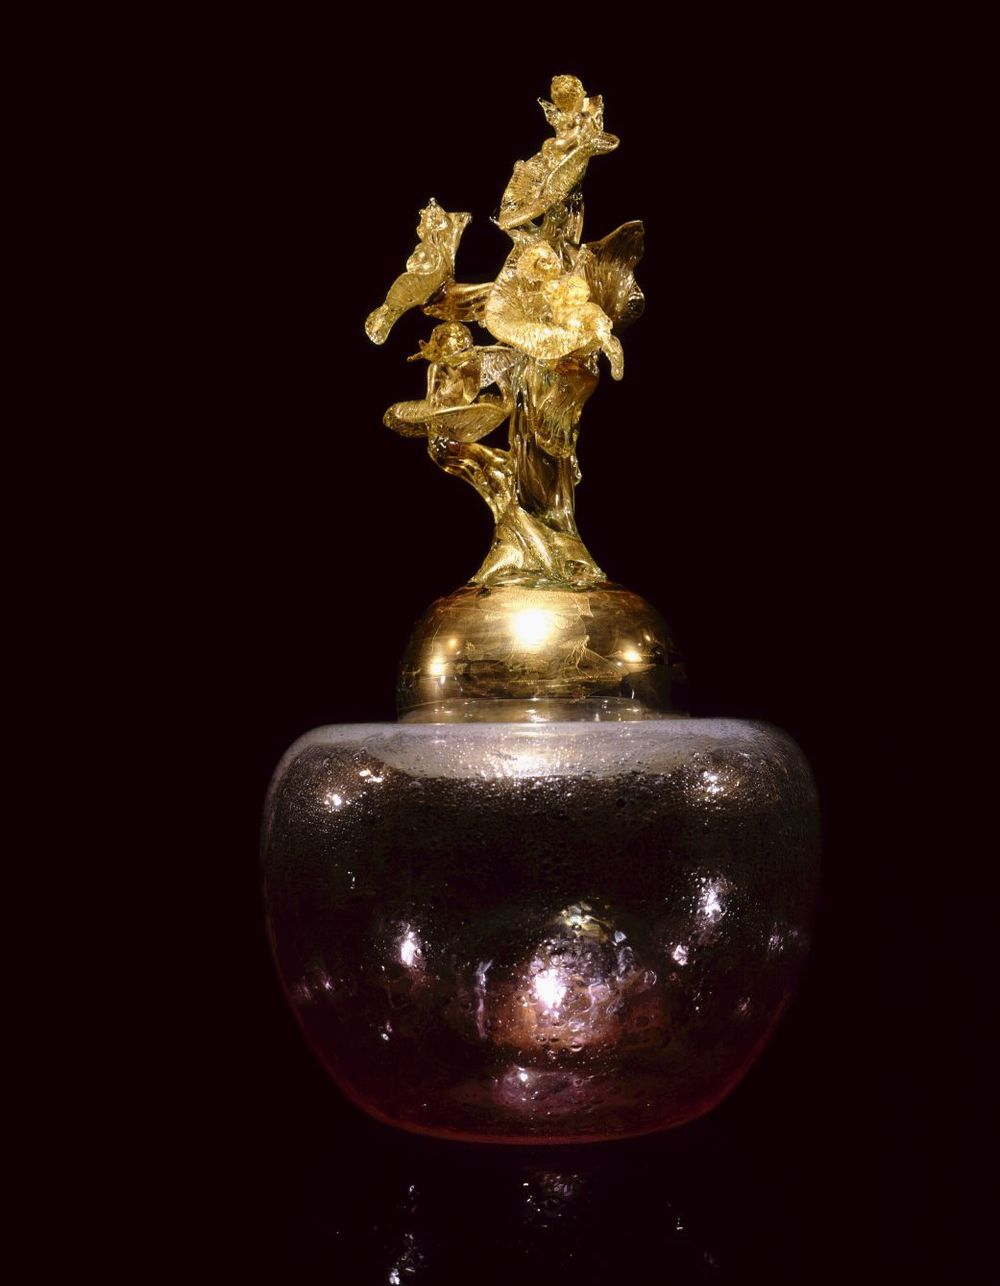 Dale Chihuly,  Stopper (Putti and the Tree)  (1994-1997, glass, 40 x 20 1/2 x 21 1/2 inches)